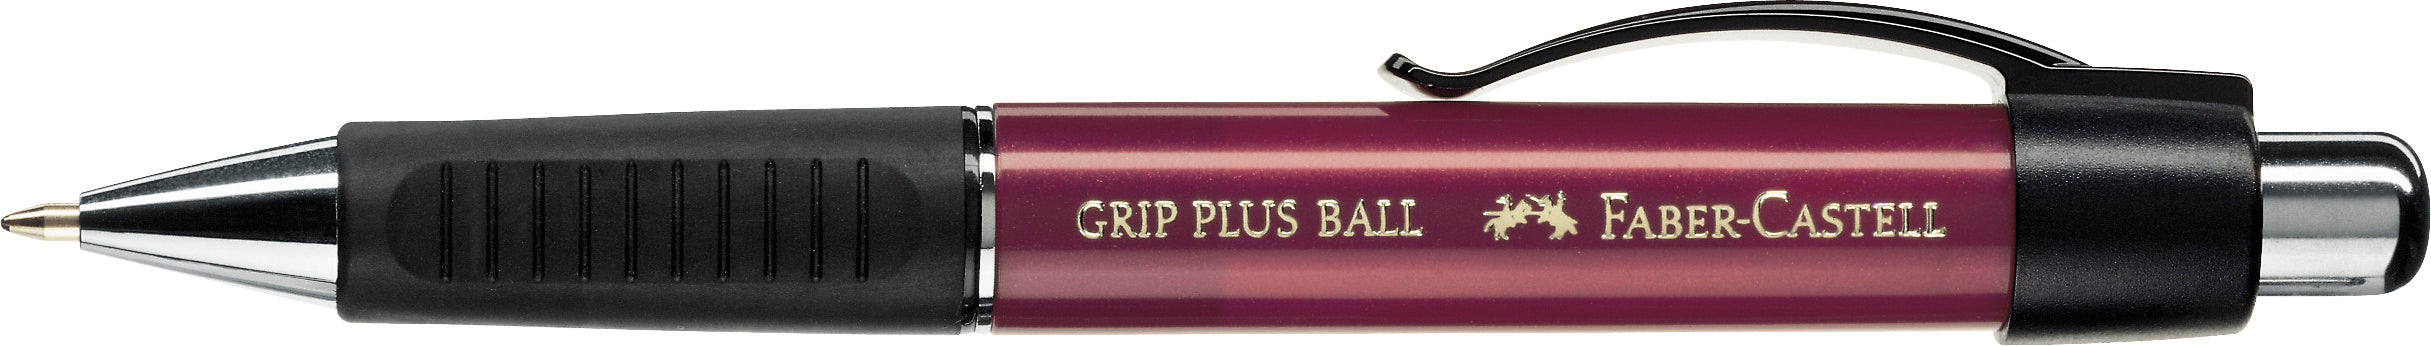 Faber-castell Grip Plus Ballpoint Pen metallic red